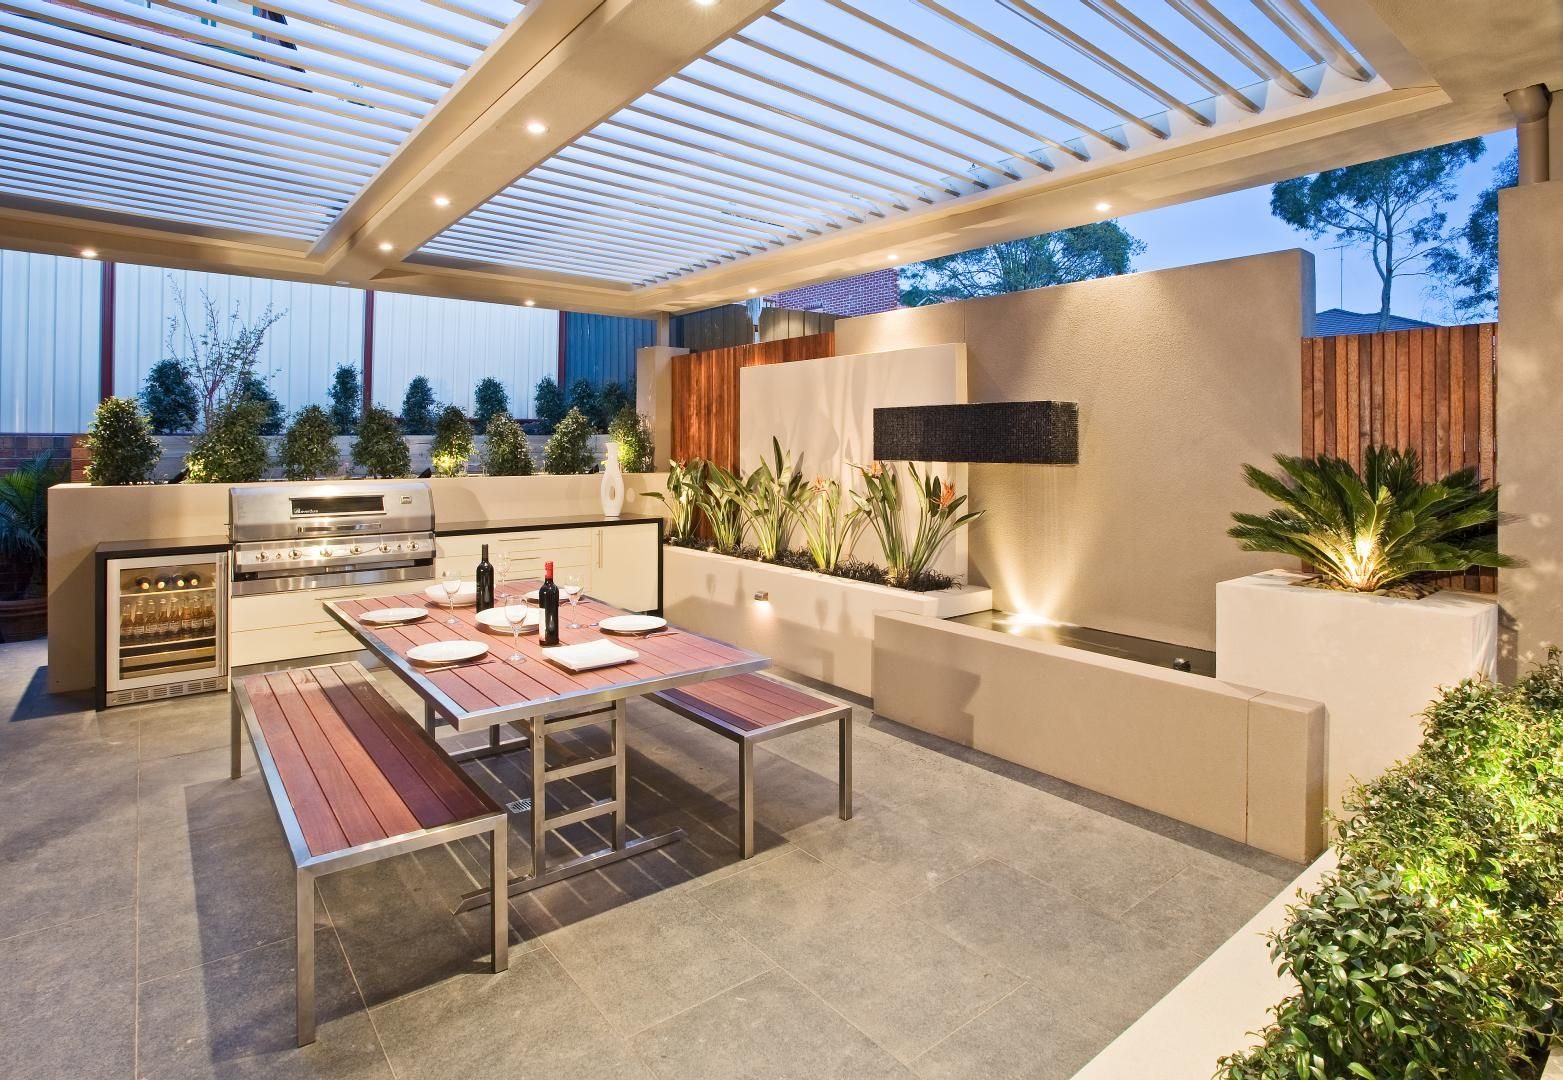 Uncategorized Design Outdoor Kitchen outdoor entertaining area project by cos design design